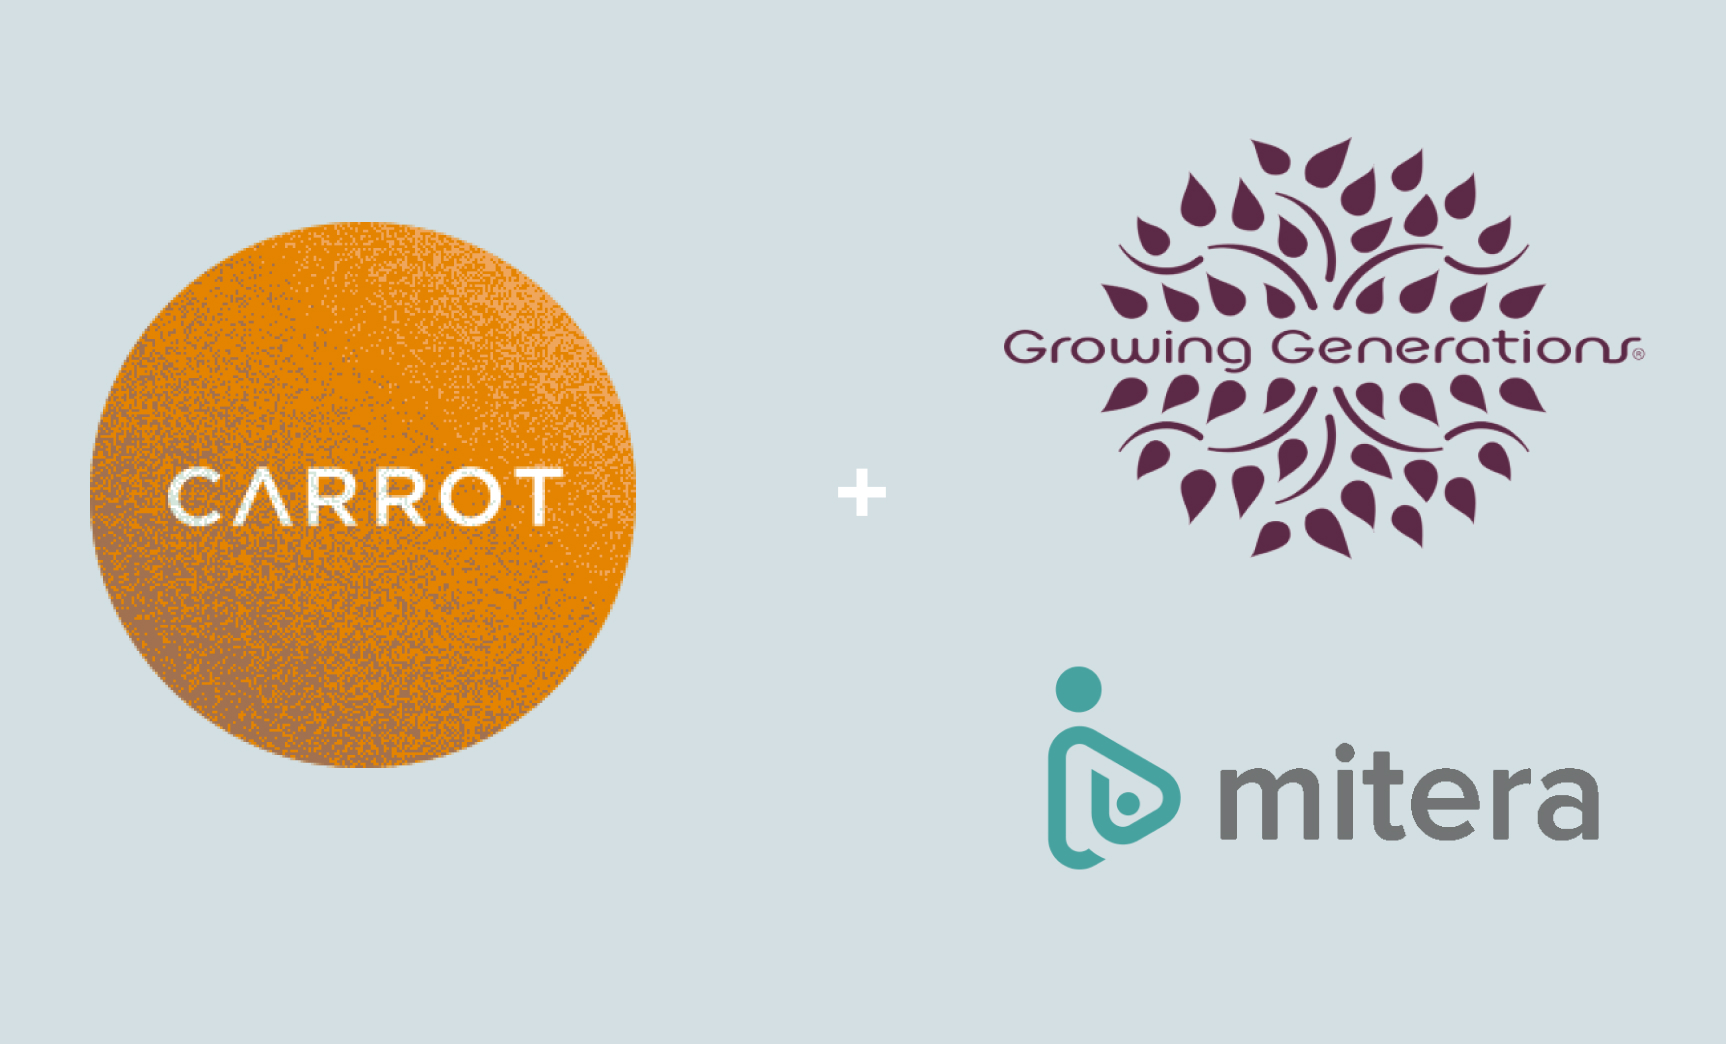 growing generations and mitera